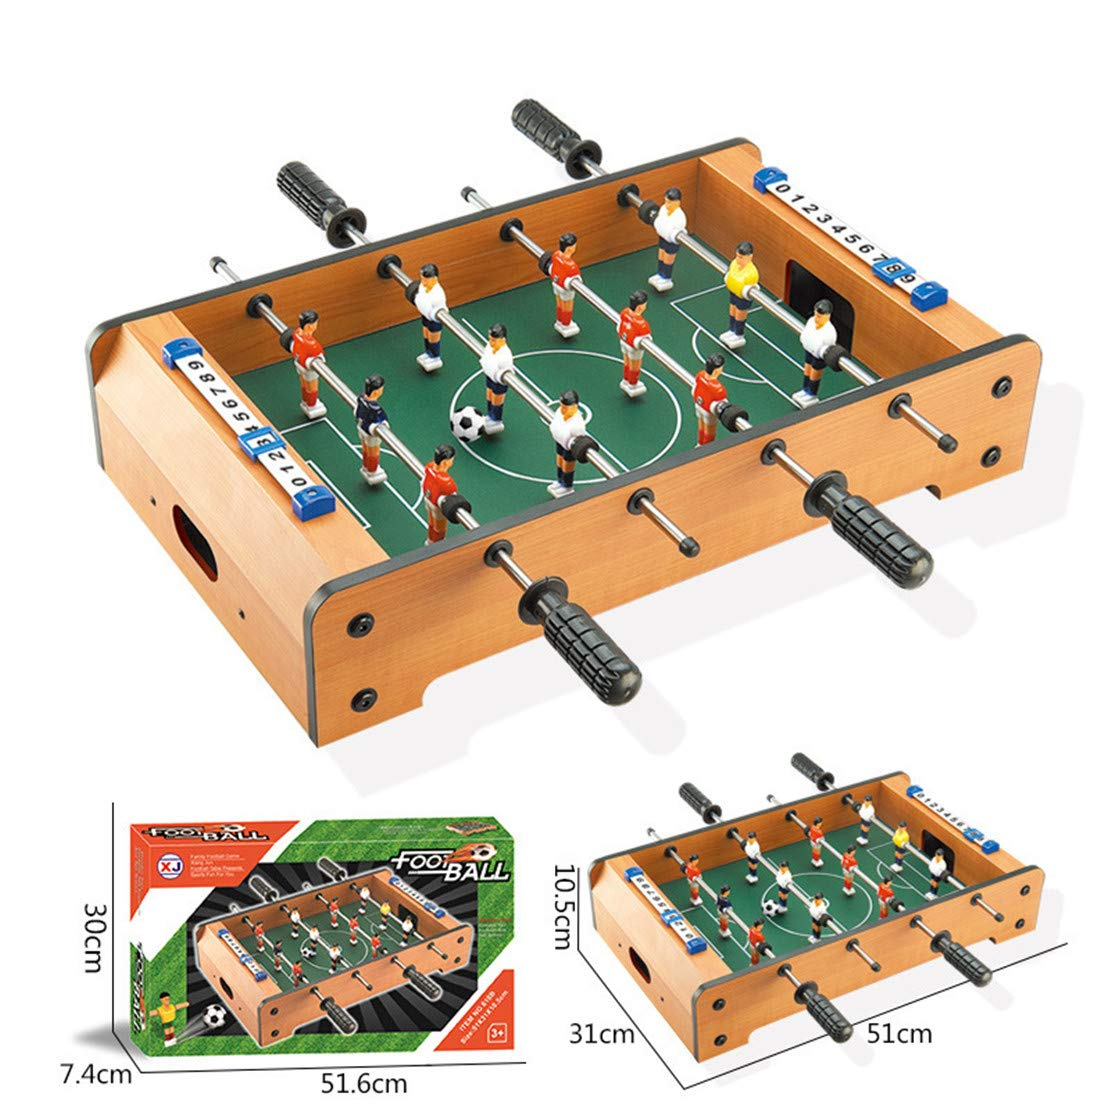 MSTQ Large Football Table Wooden Indoor Soccer Table 6 Football Table Double Battle Desktop Board Game Children Sports Toys 9 Models (618B, L) by MSTQ